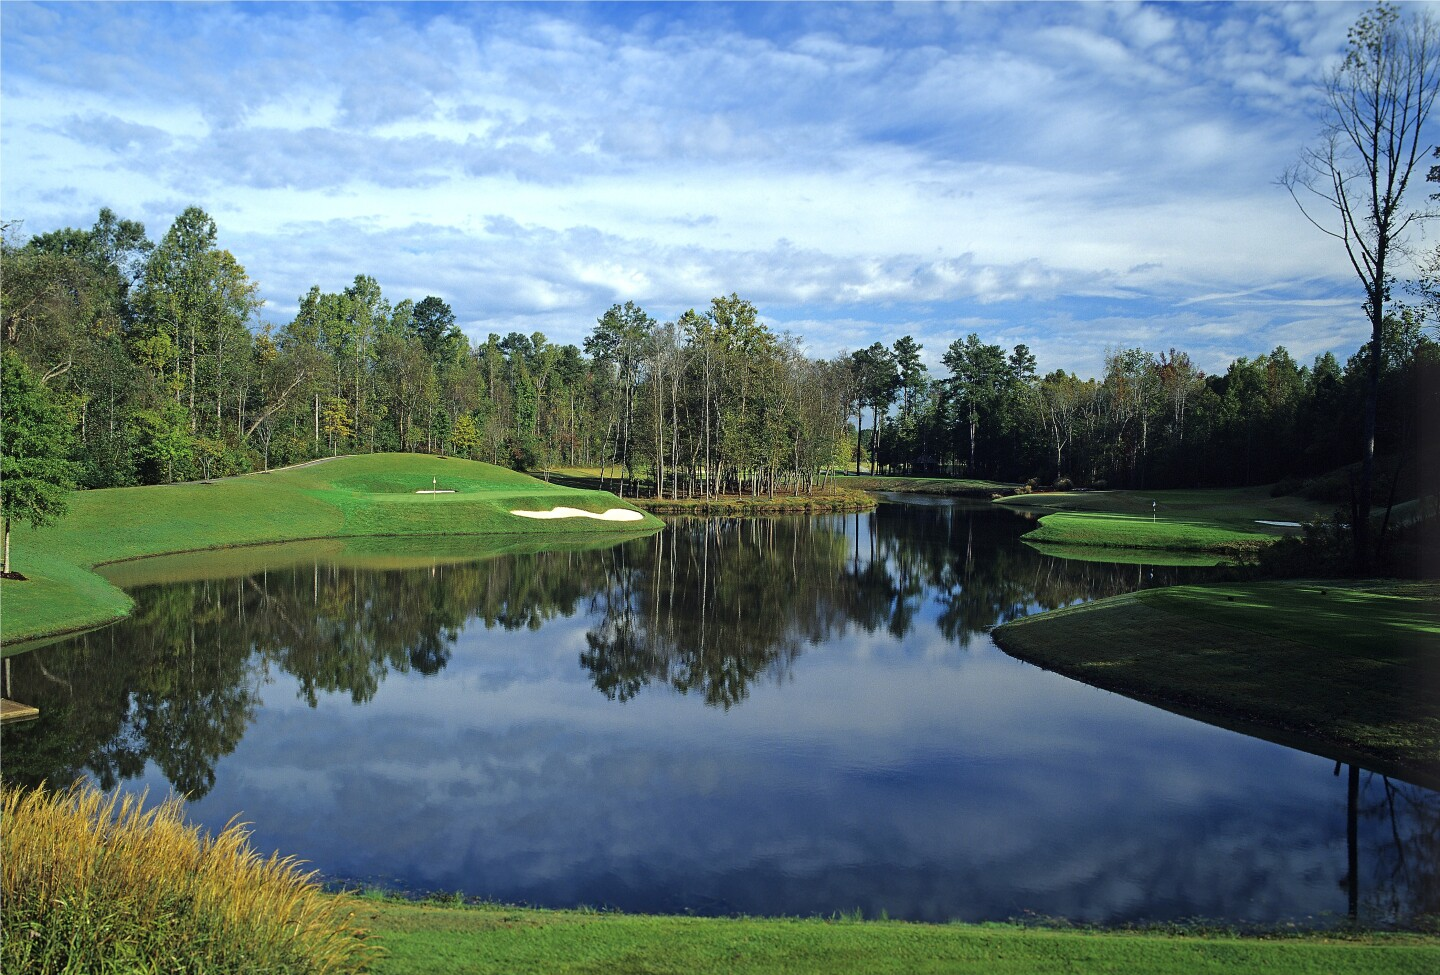 Bears Best_Golf_Course_Image